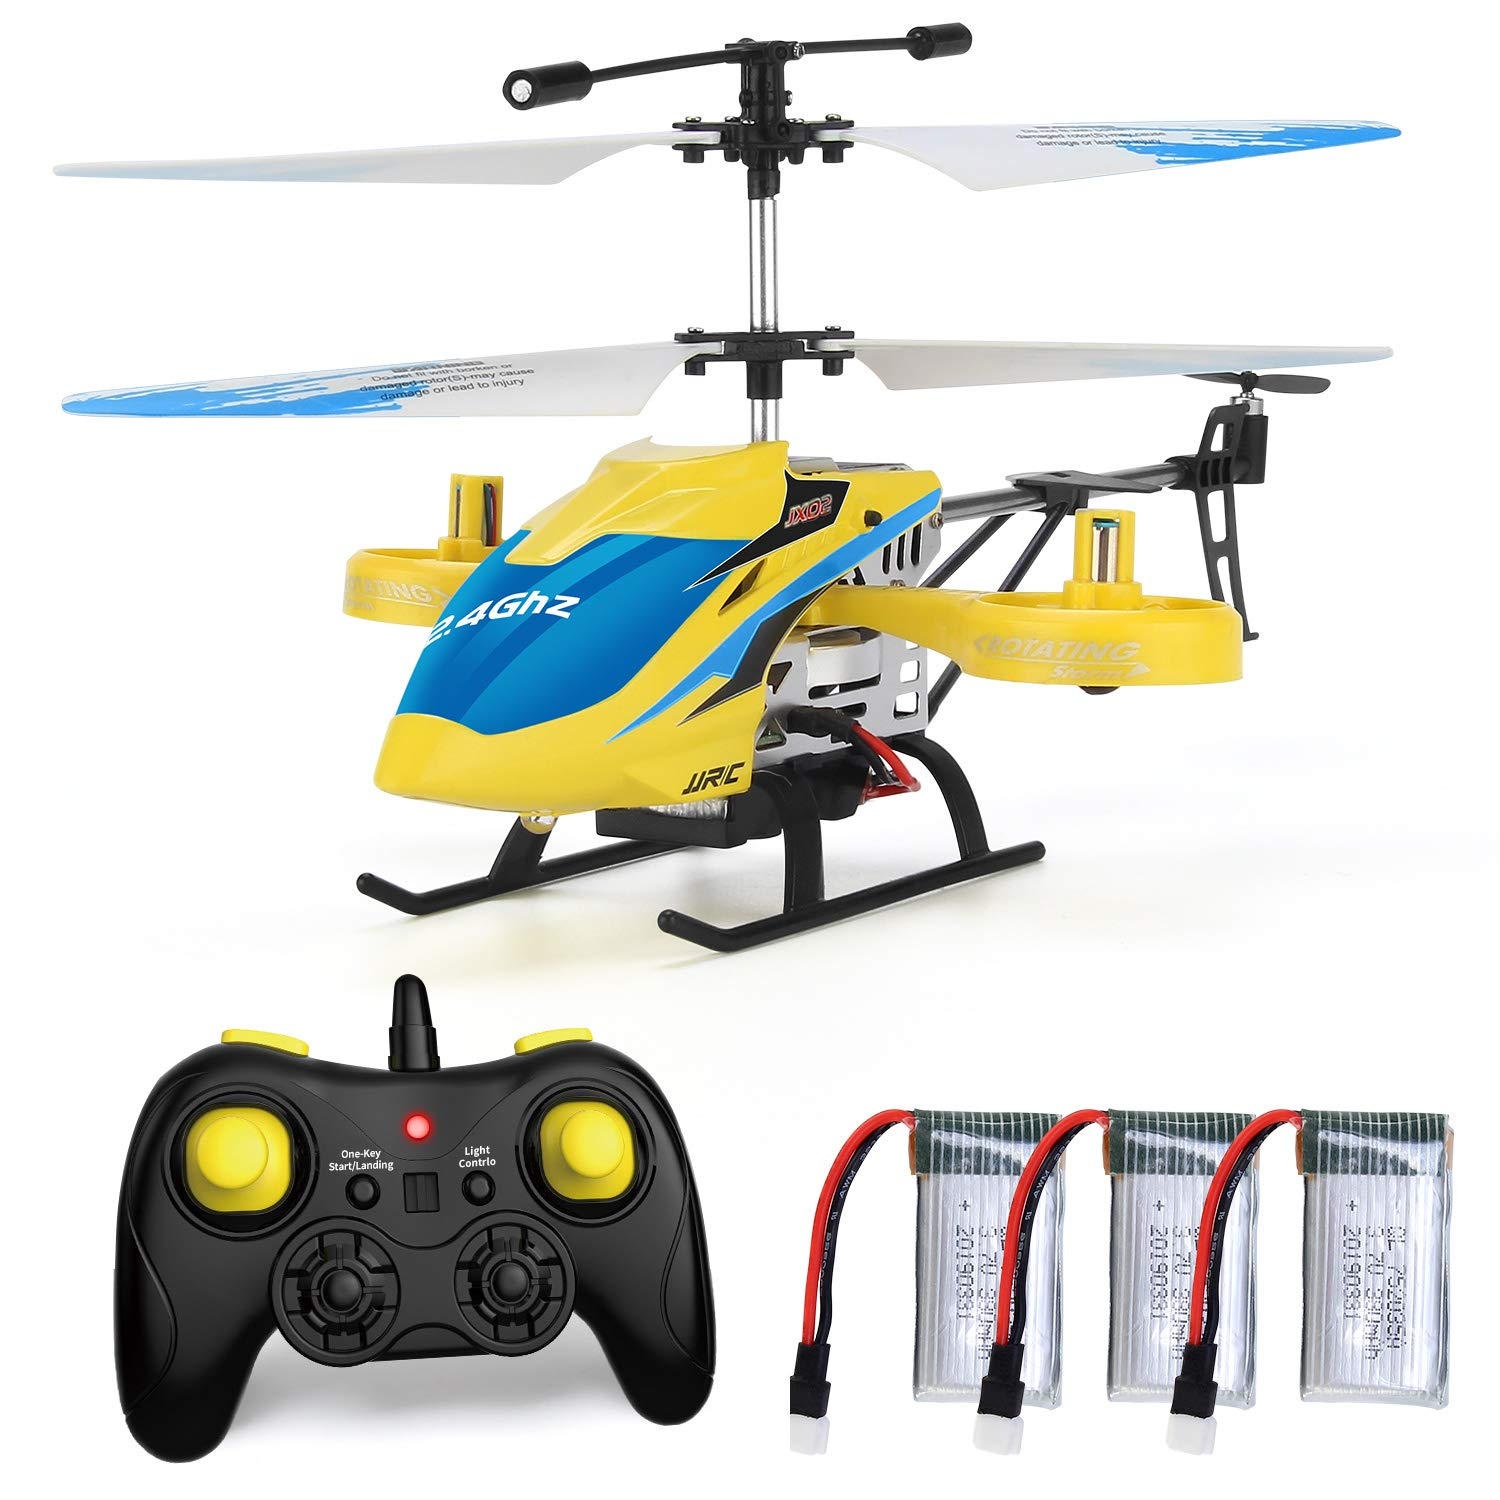 Yellow JX02 Helicopter 4 Channel with Side Propellers for Fly Sideway Altitude Hold with 3 Batteries in 18 Minutes Crash Resistance RC Toy Helicopter Gift JJRC Helicopter with Remote Control